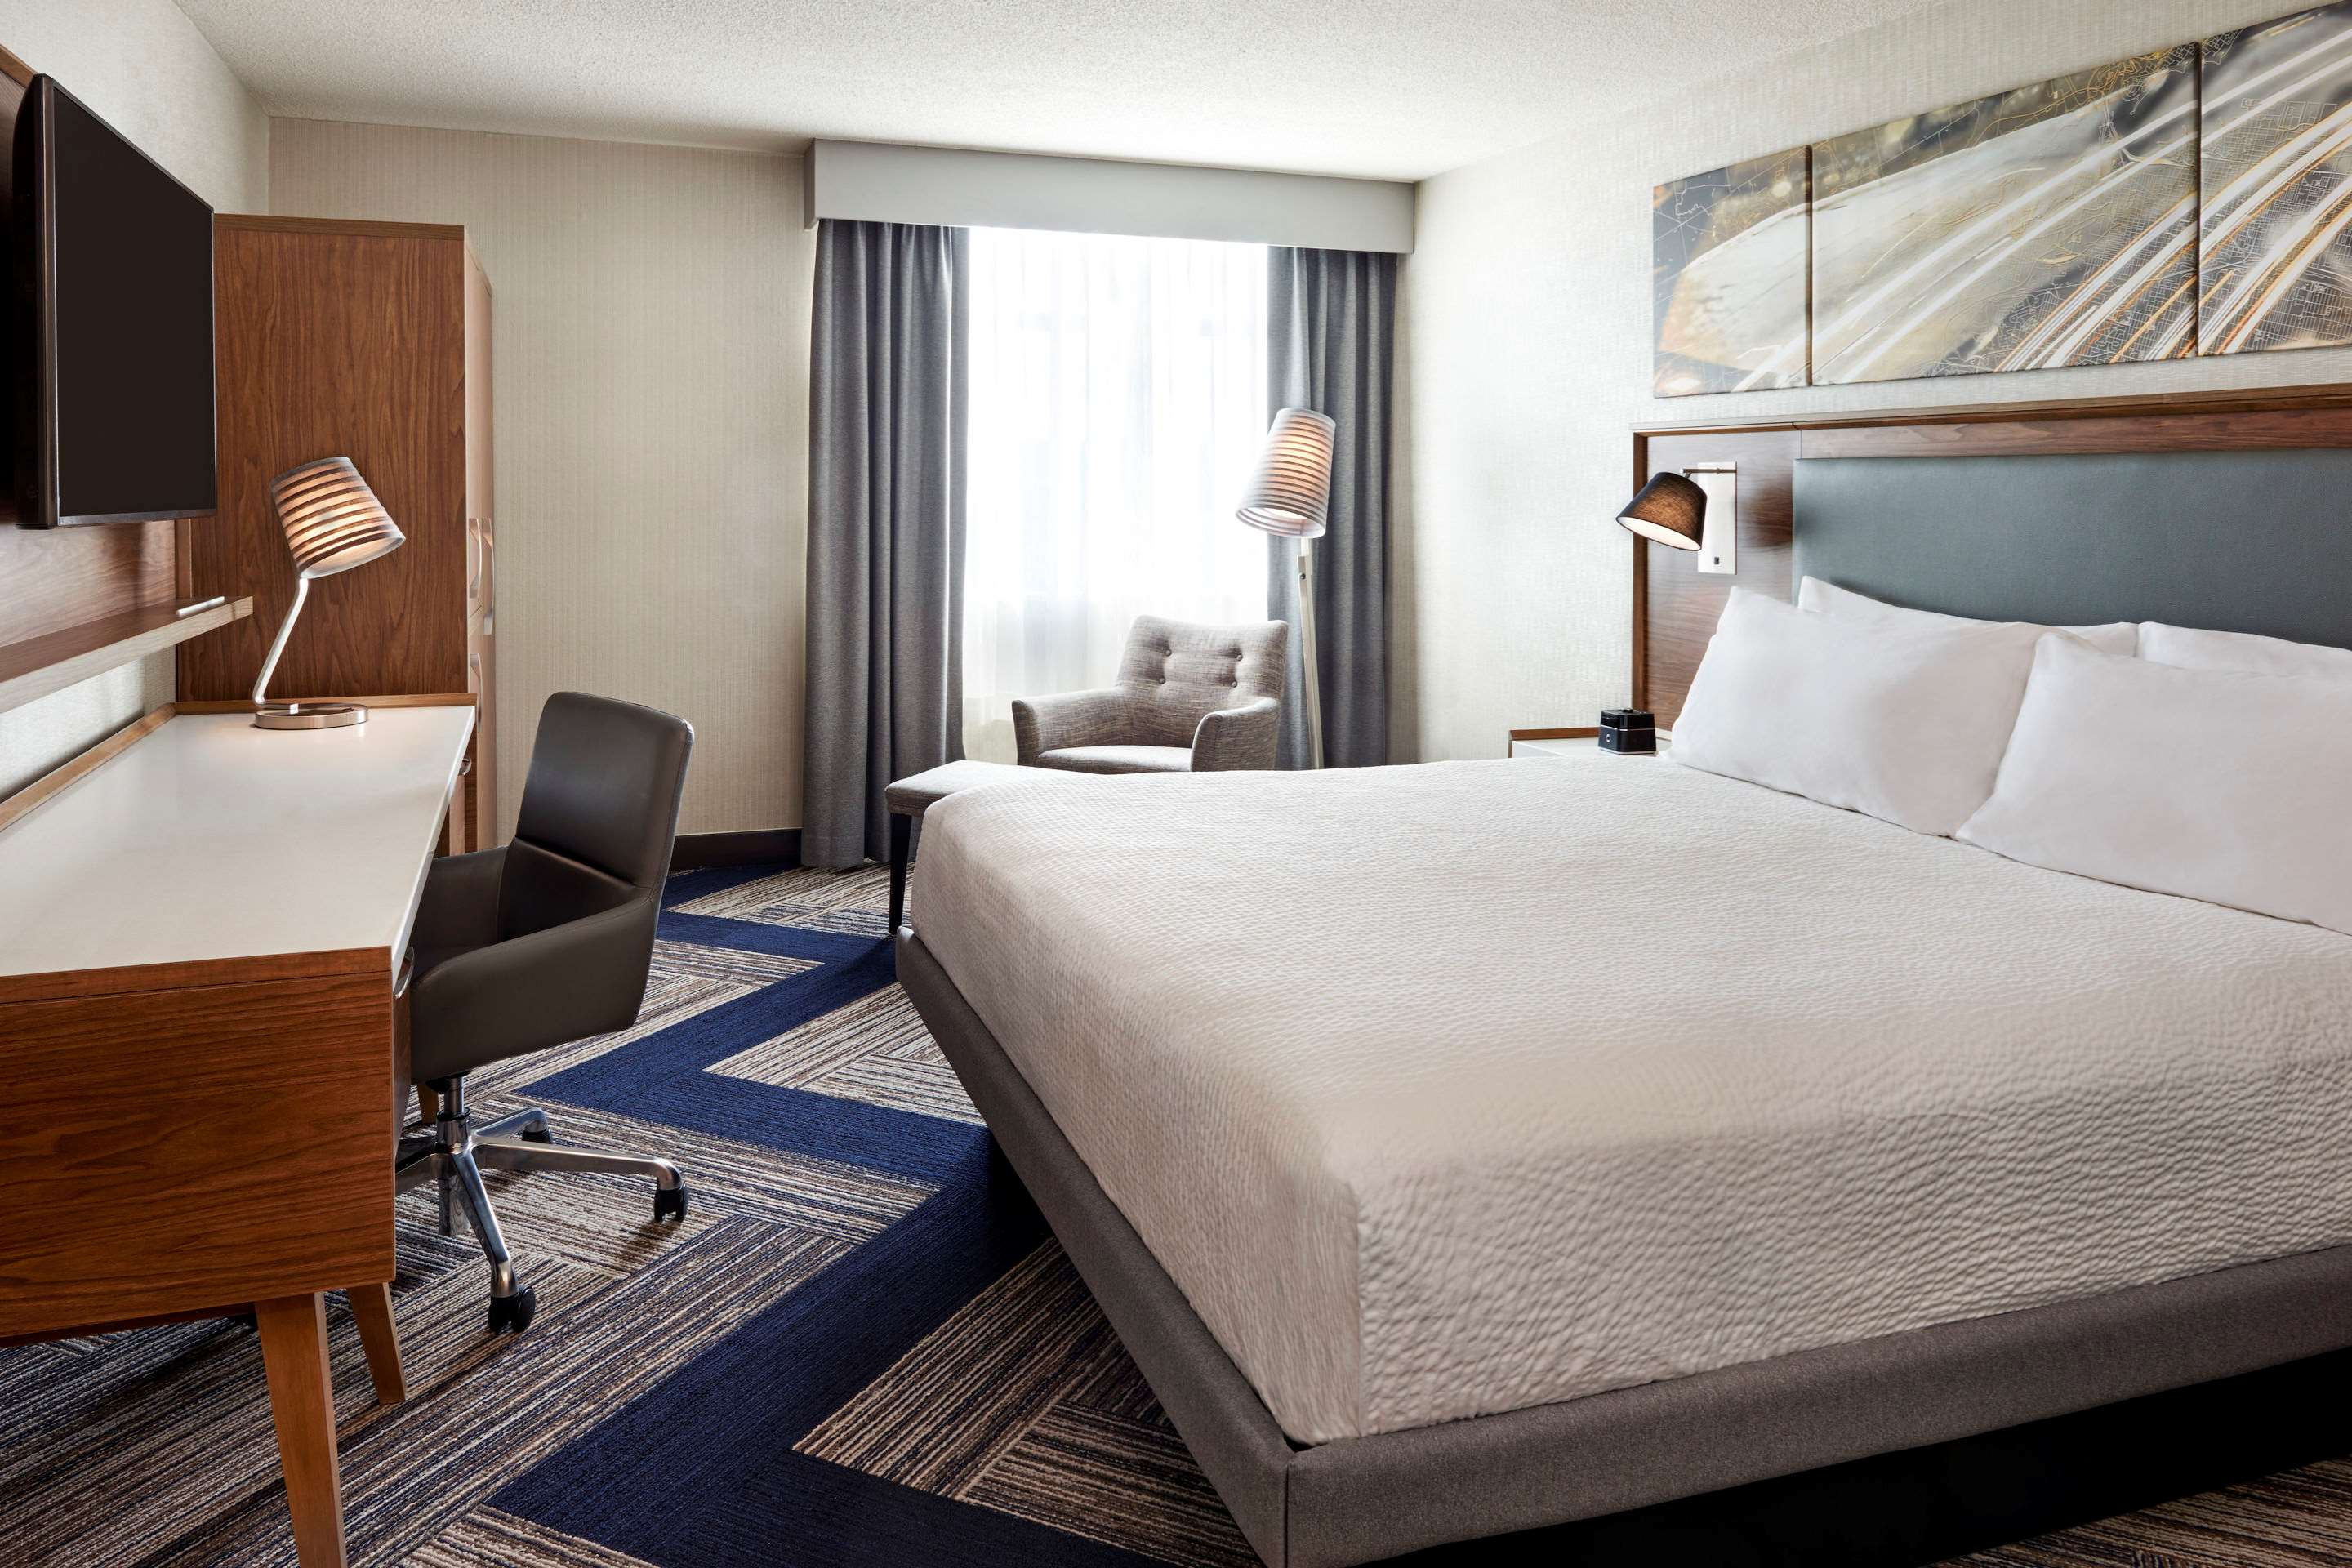 Guest room with added amenities Comfort Inn Sarnia (519)383-6767